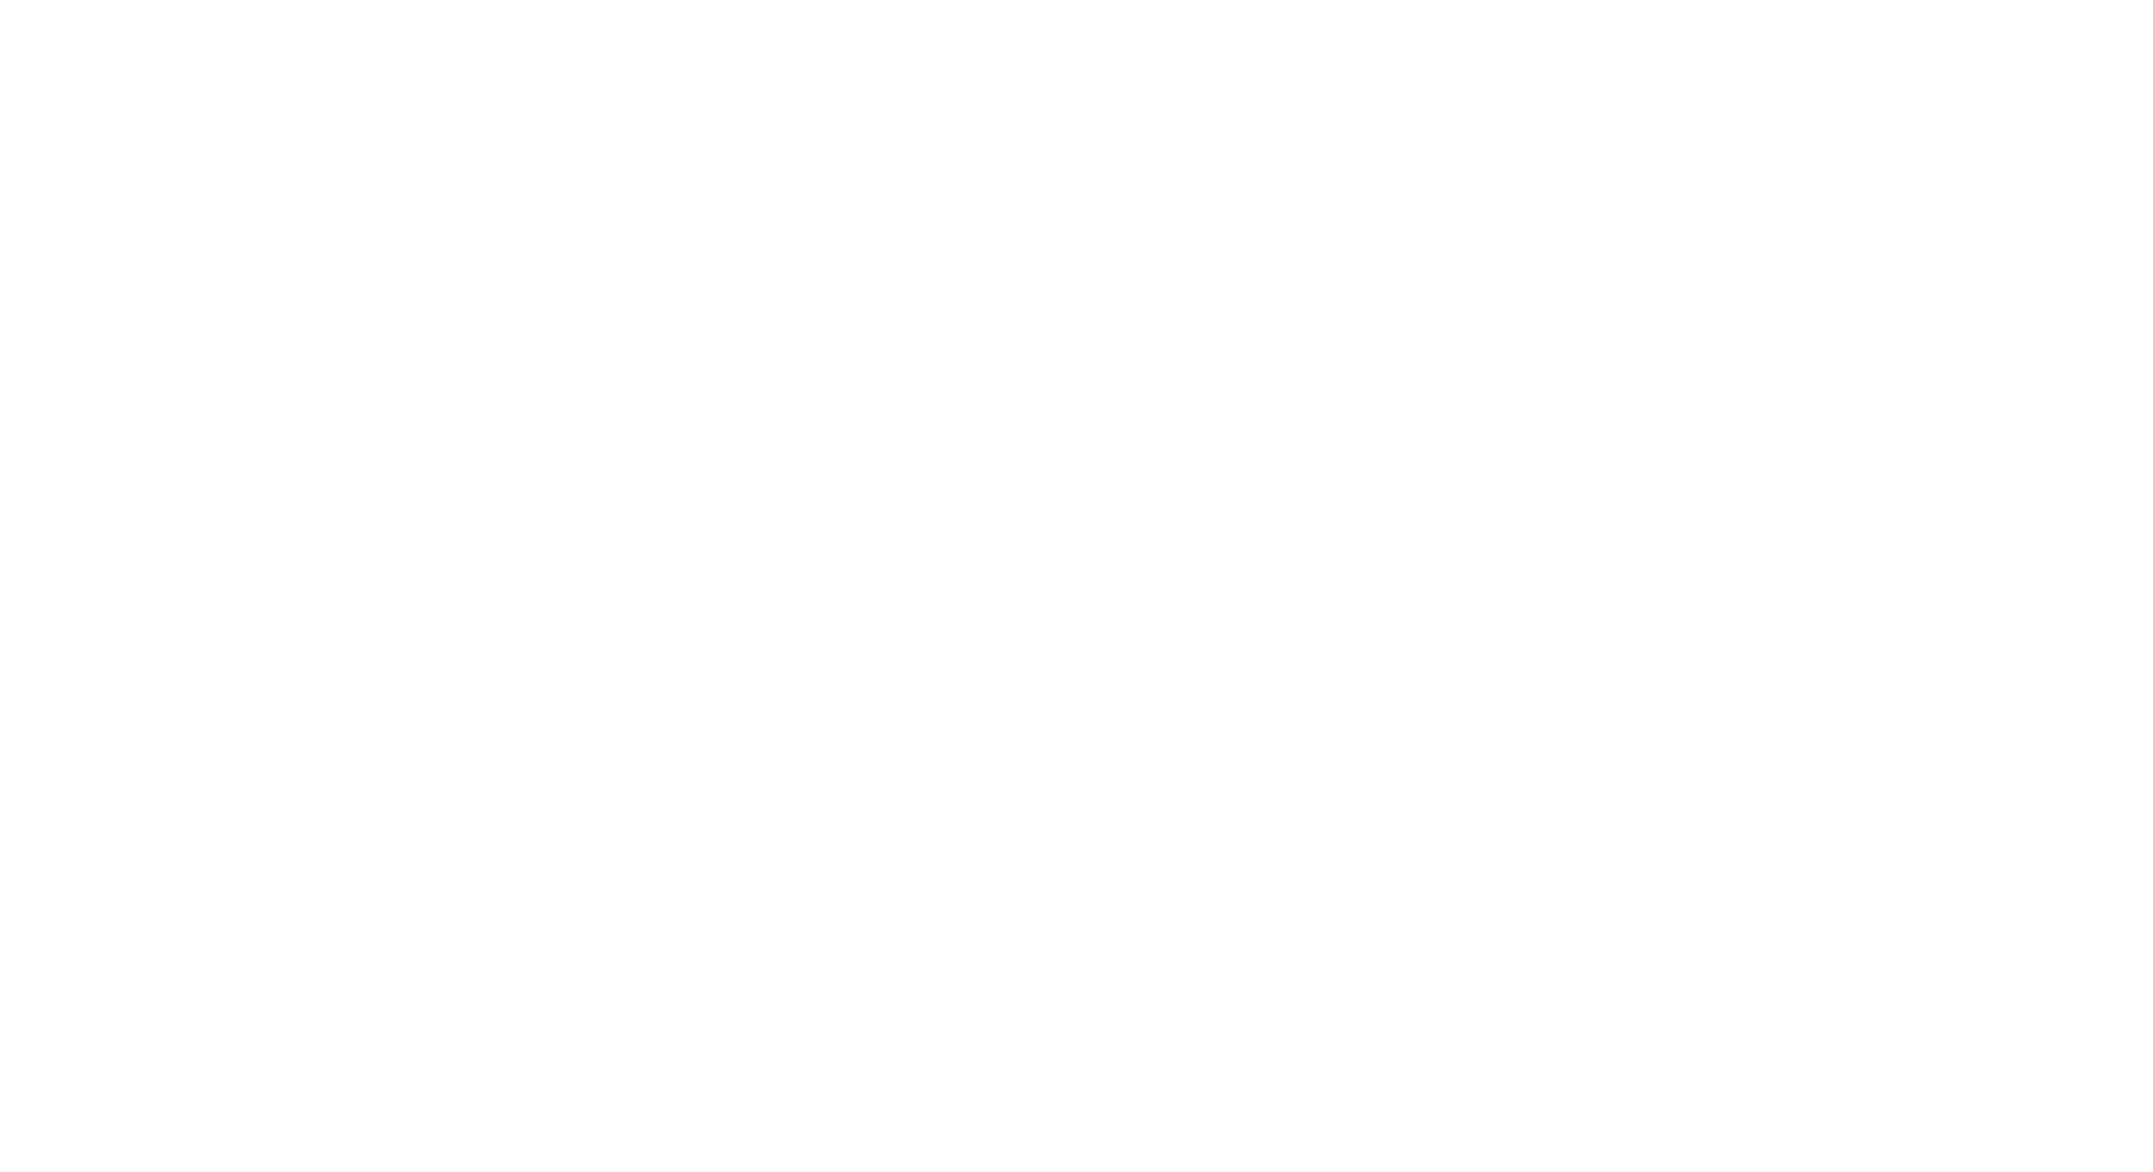 Seattle Magazine